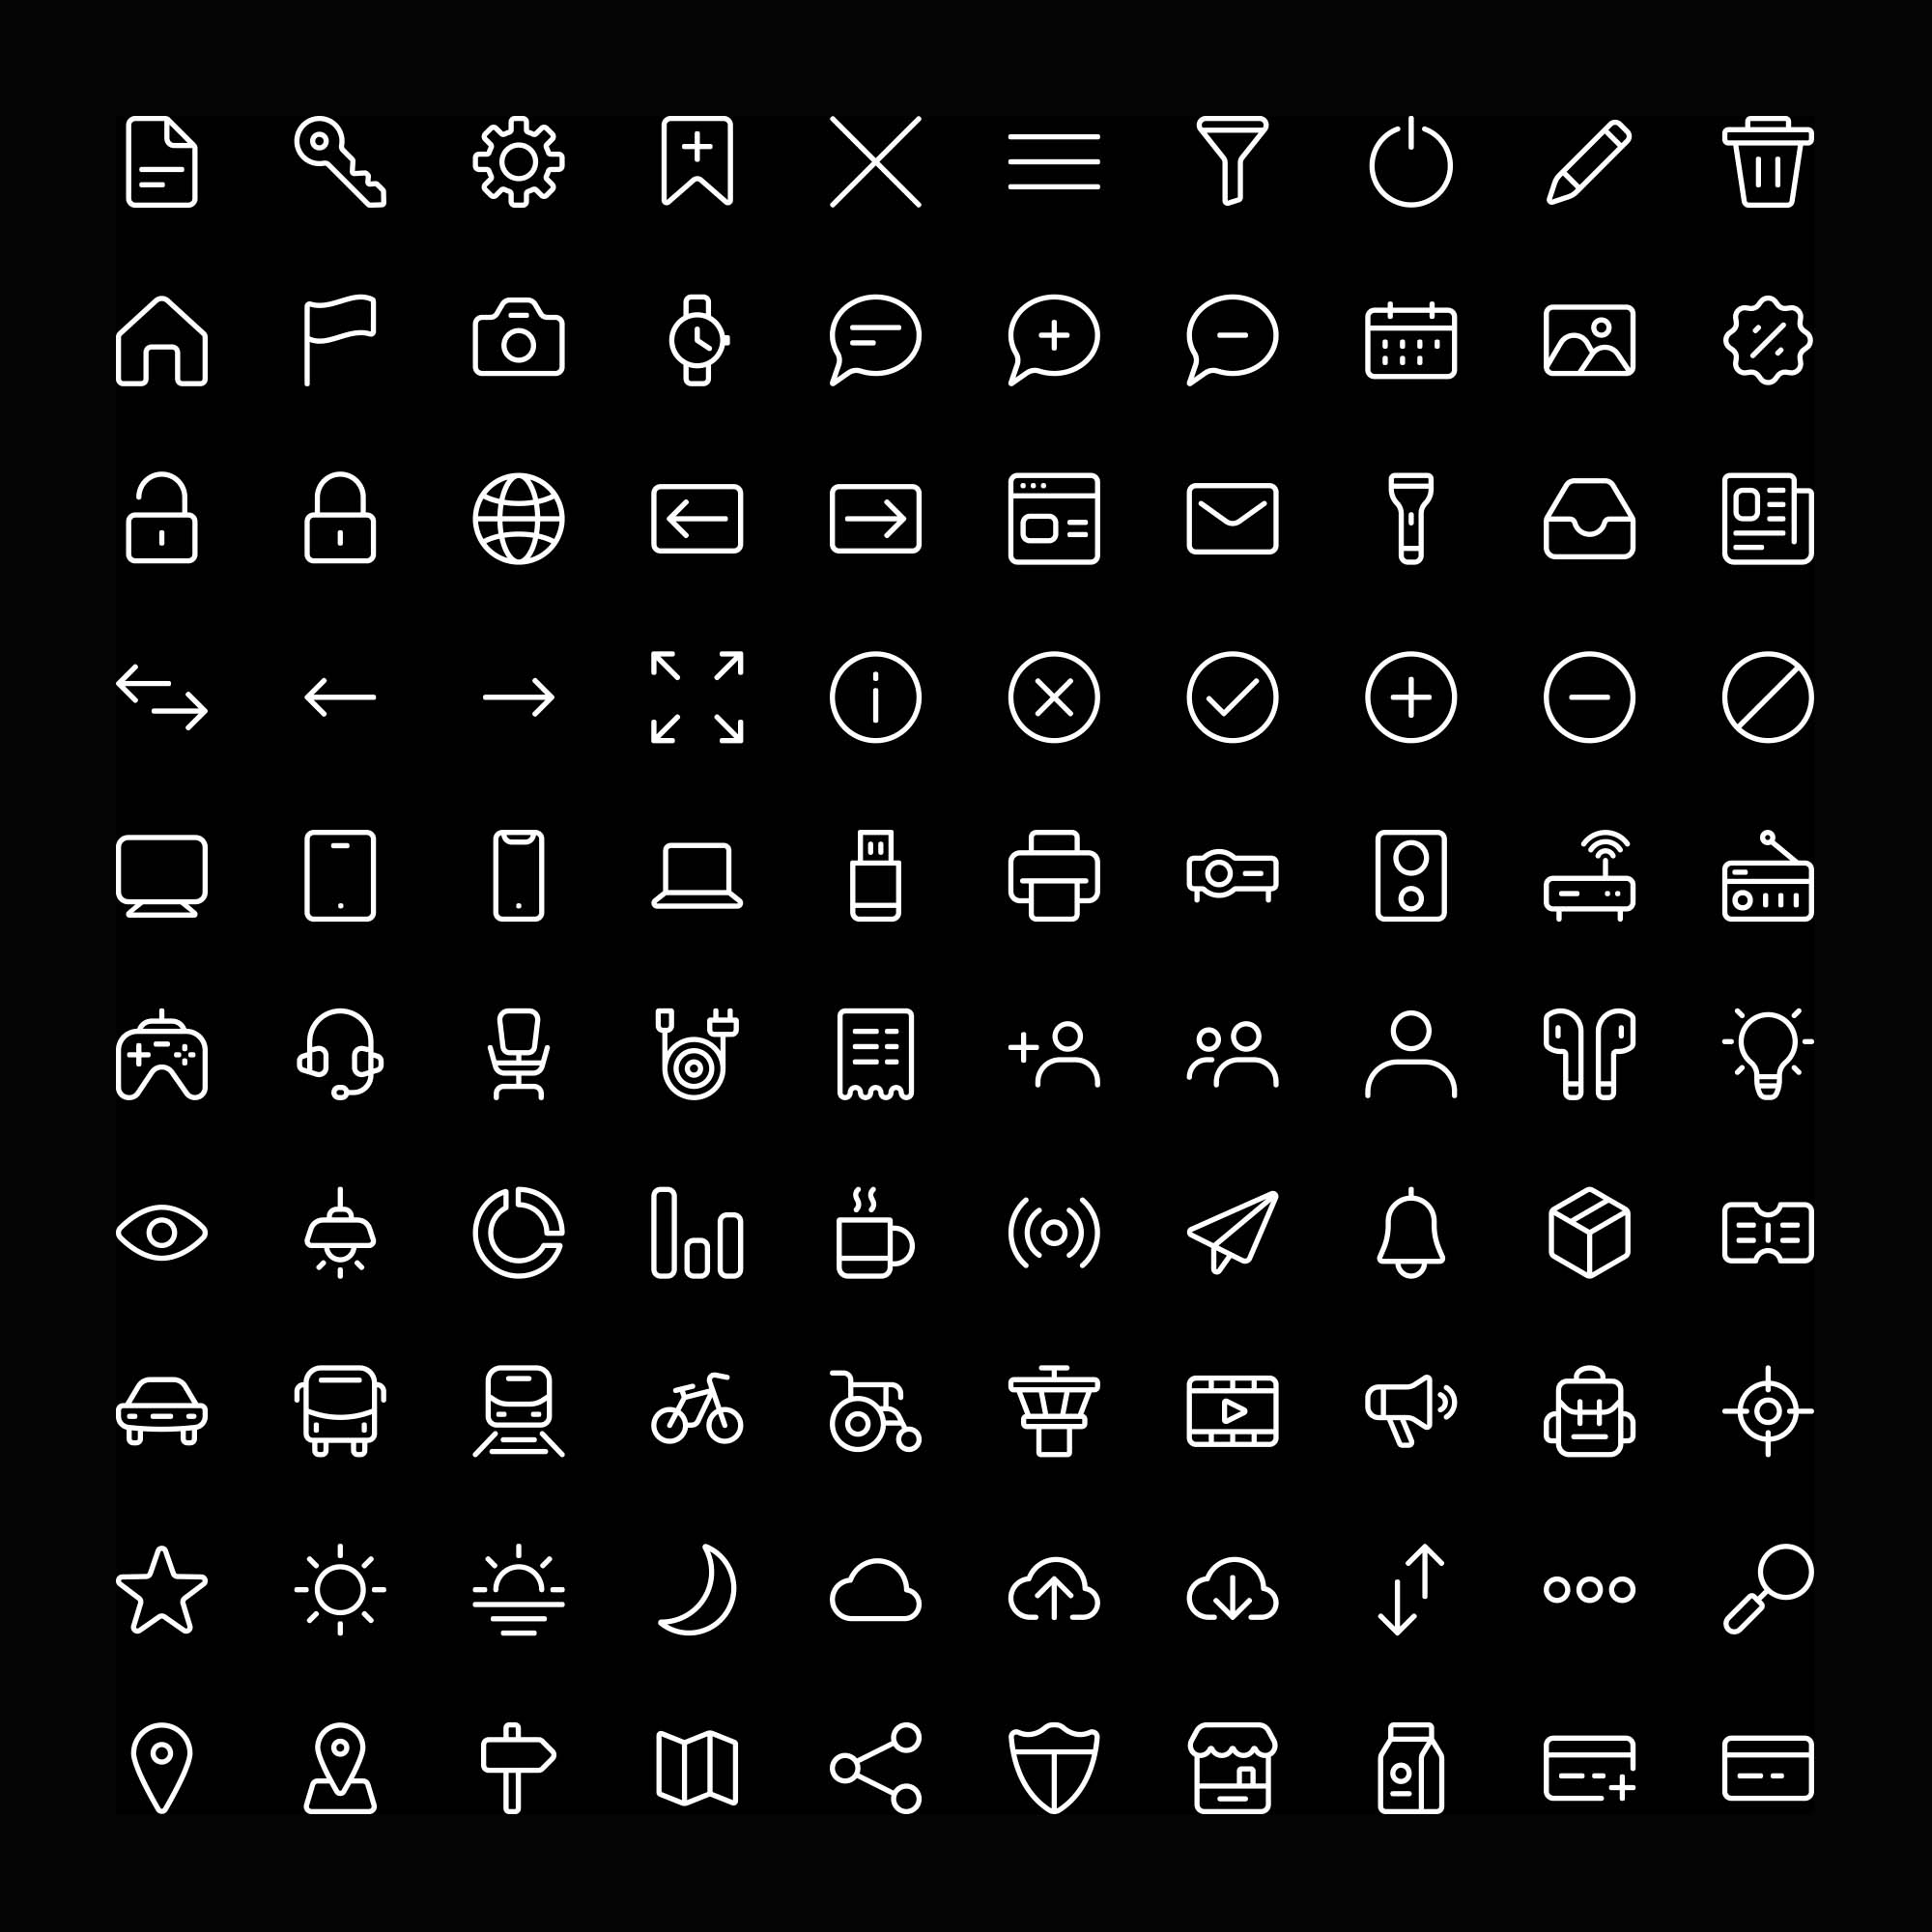 100 Line Vector Icons 2